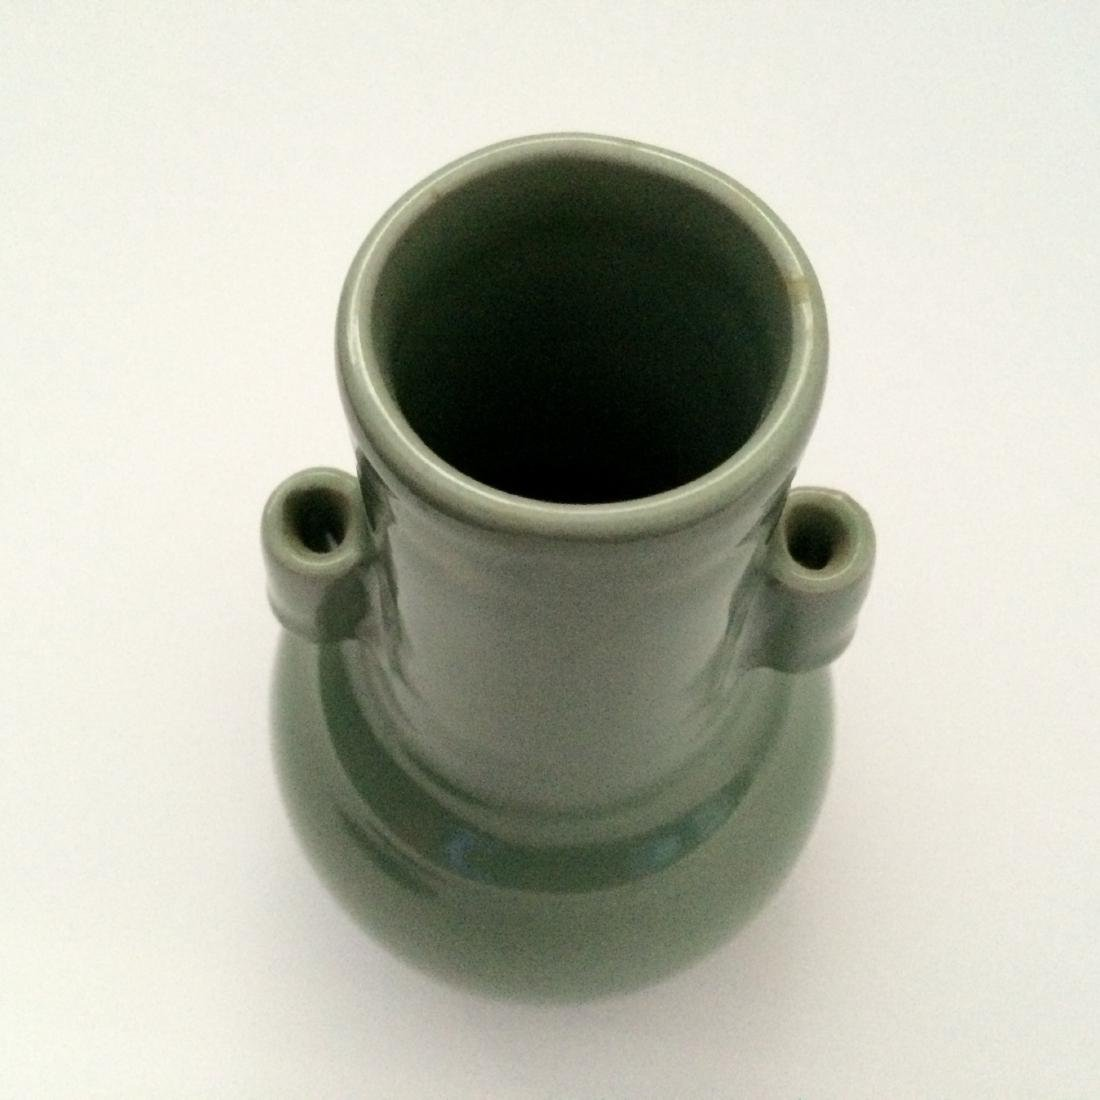 Imperial Qun Ware Vase, Song Dynasty Mei Zi Qing Color